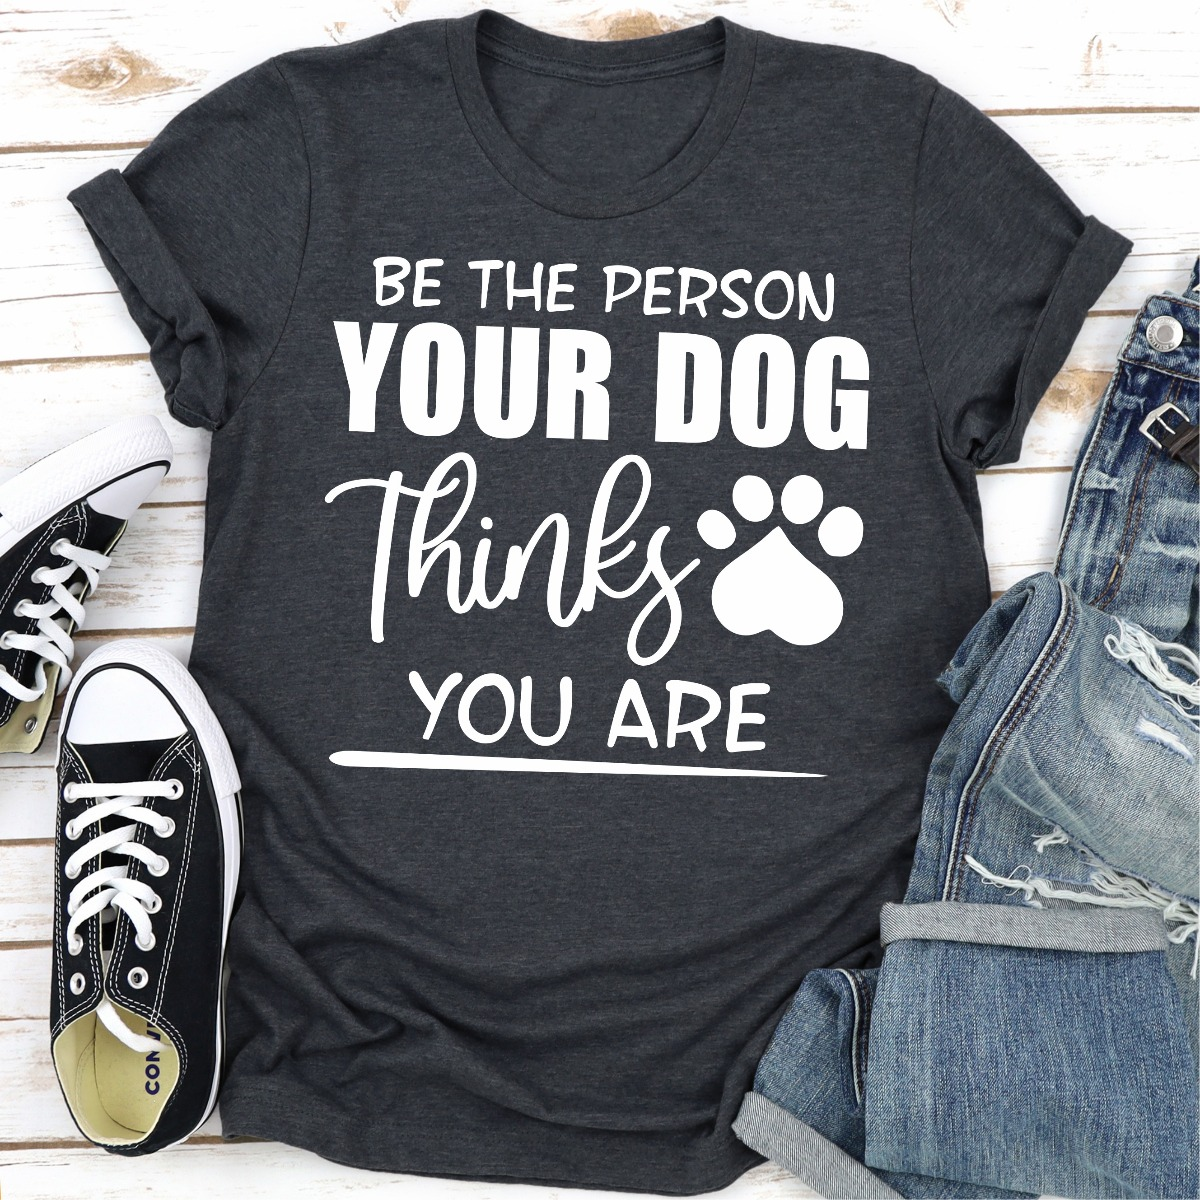 Be The Person Your Dog Thinks You Are (Dark Heather / Xl)